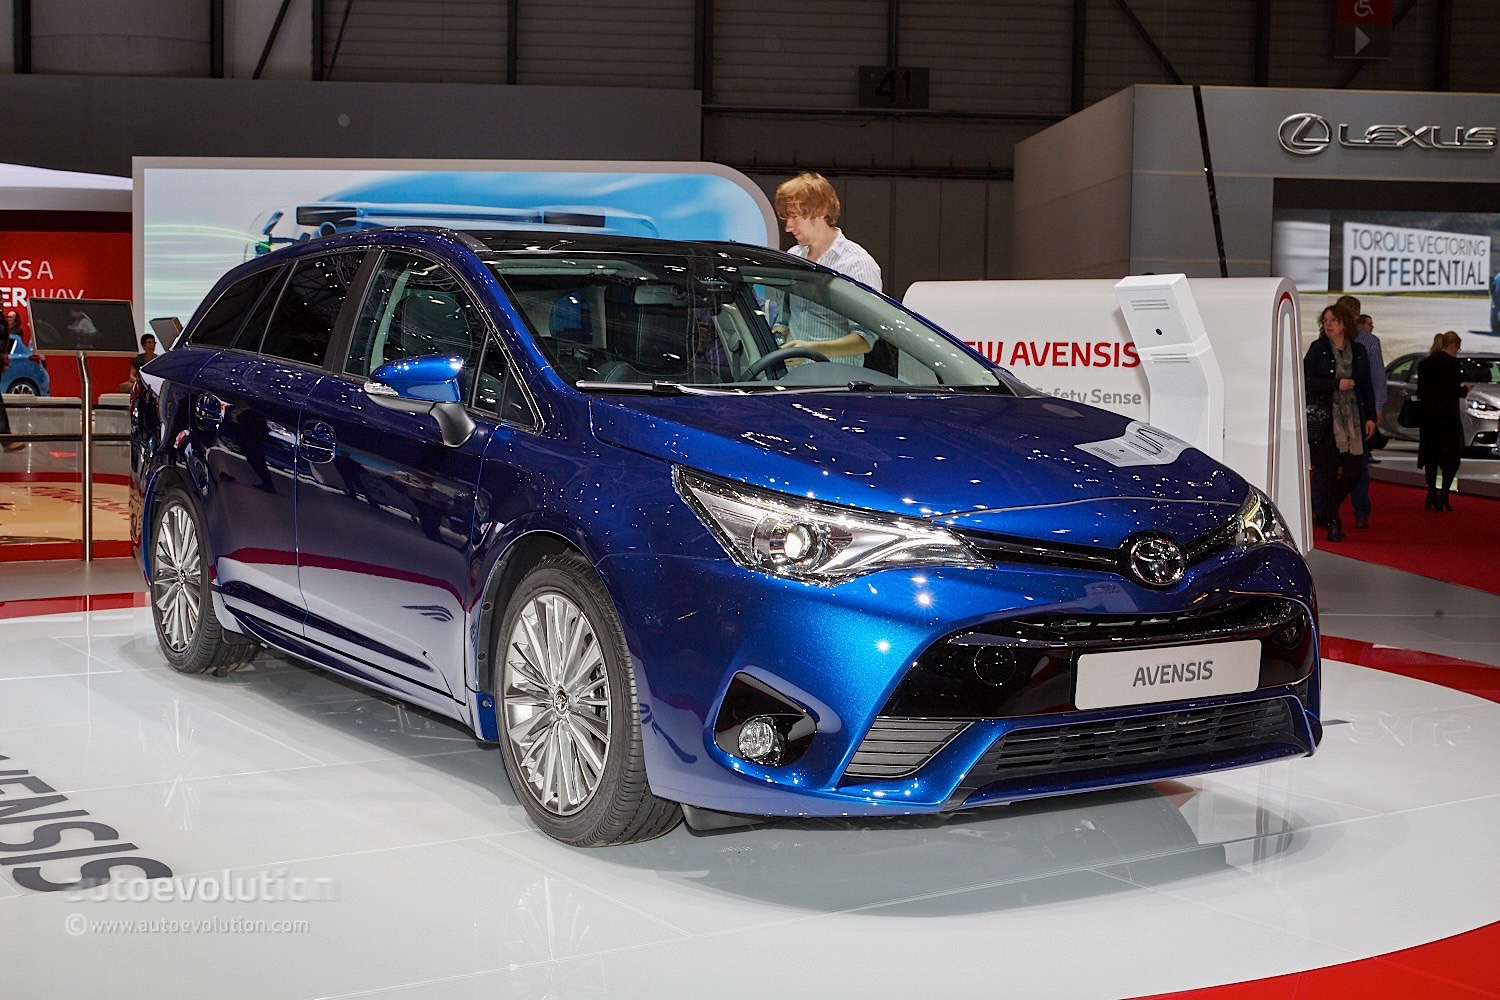 2016 Toyota Prius Photos Specifications Cd 024 Fuel Economy Electric Car Conversion Project Forkenswift Page 69 Hypermiling Ecomodding News And Forum